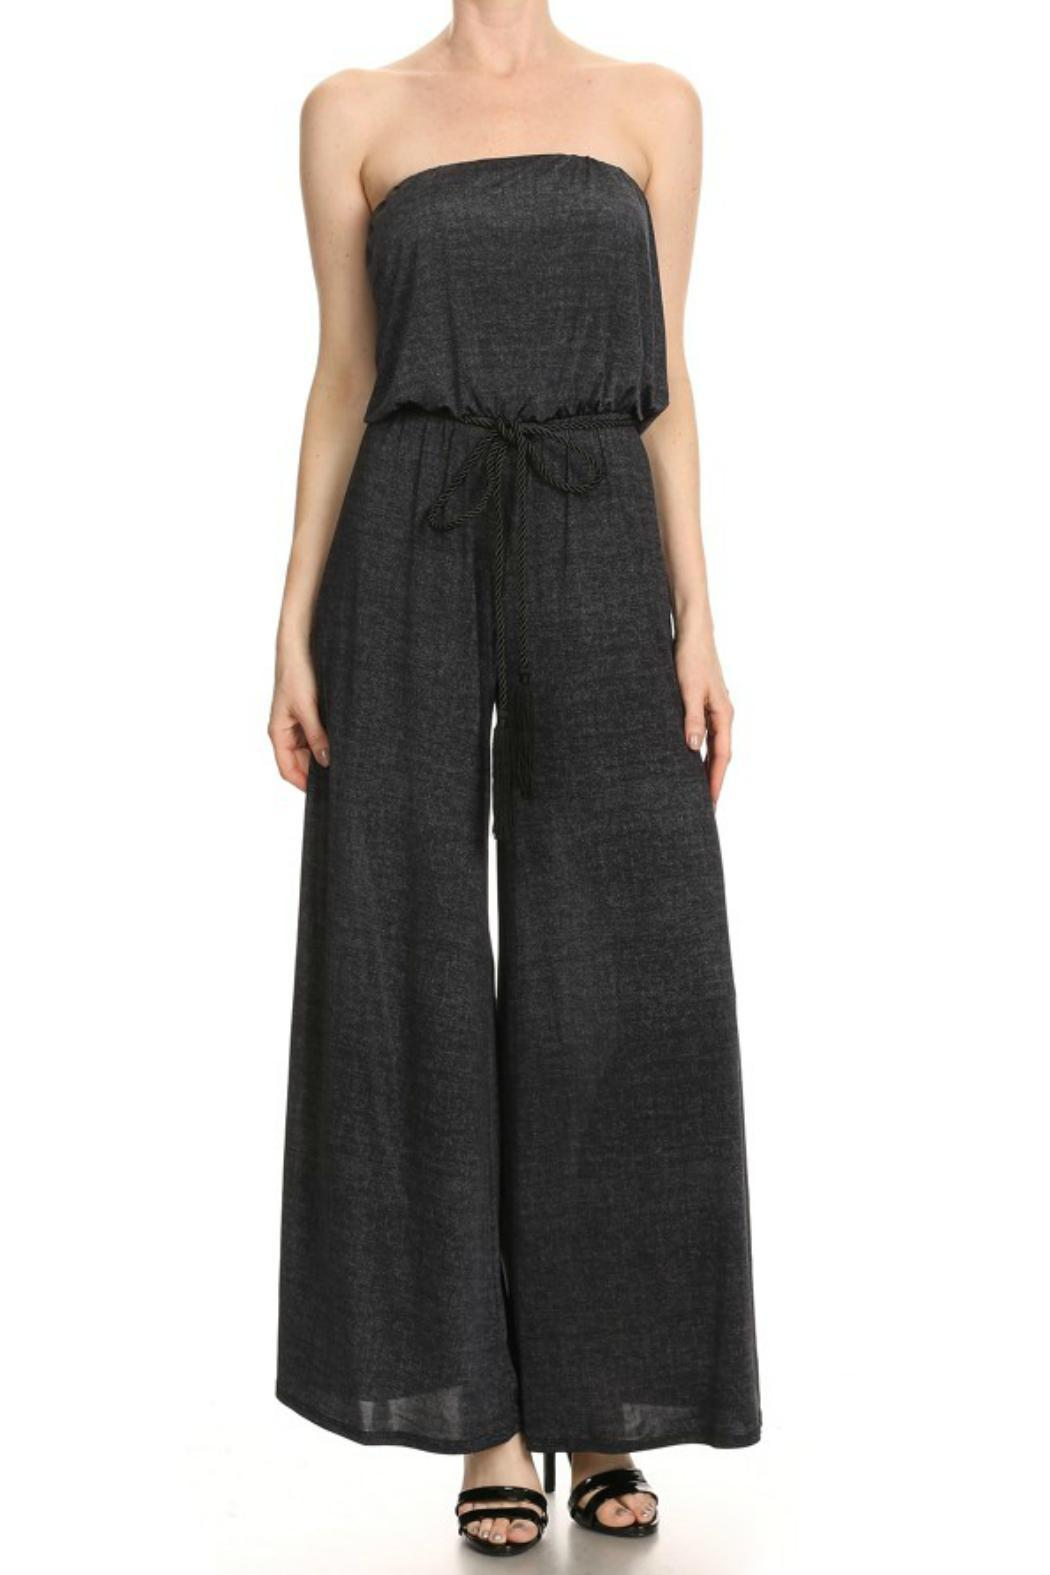 Ariella Strapless Belted Jumpsuit - Main Image